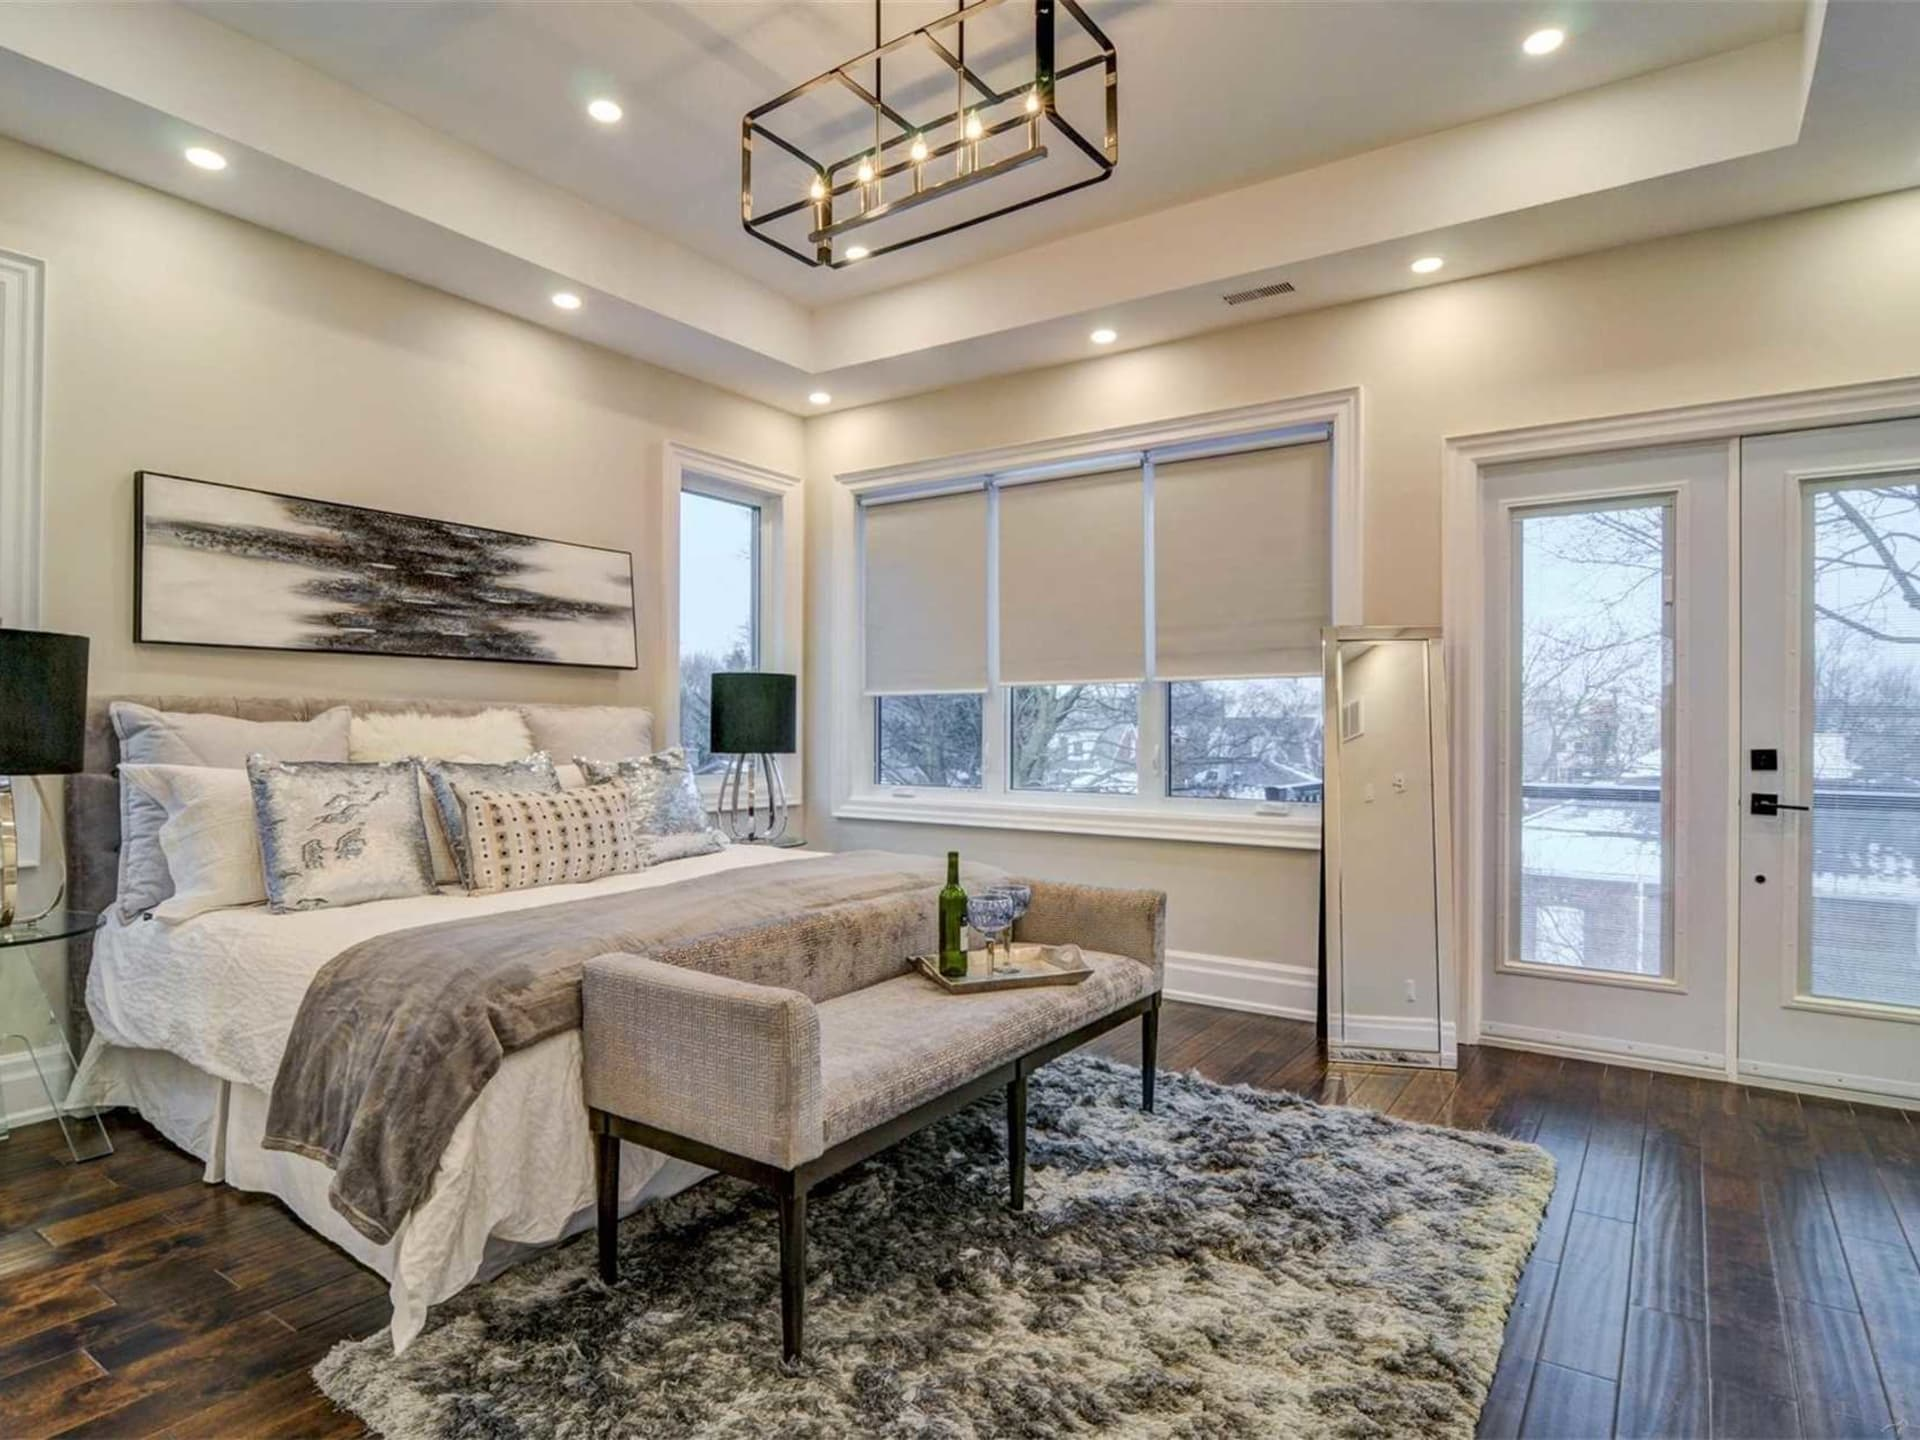 Bedroom, 9 Lloyd Manor, Toronto Home Staging